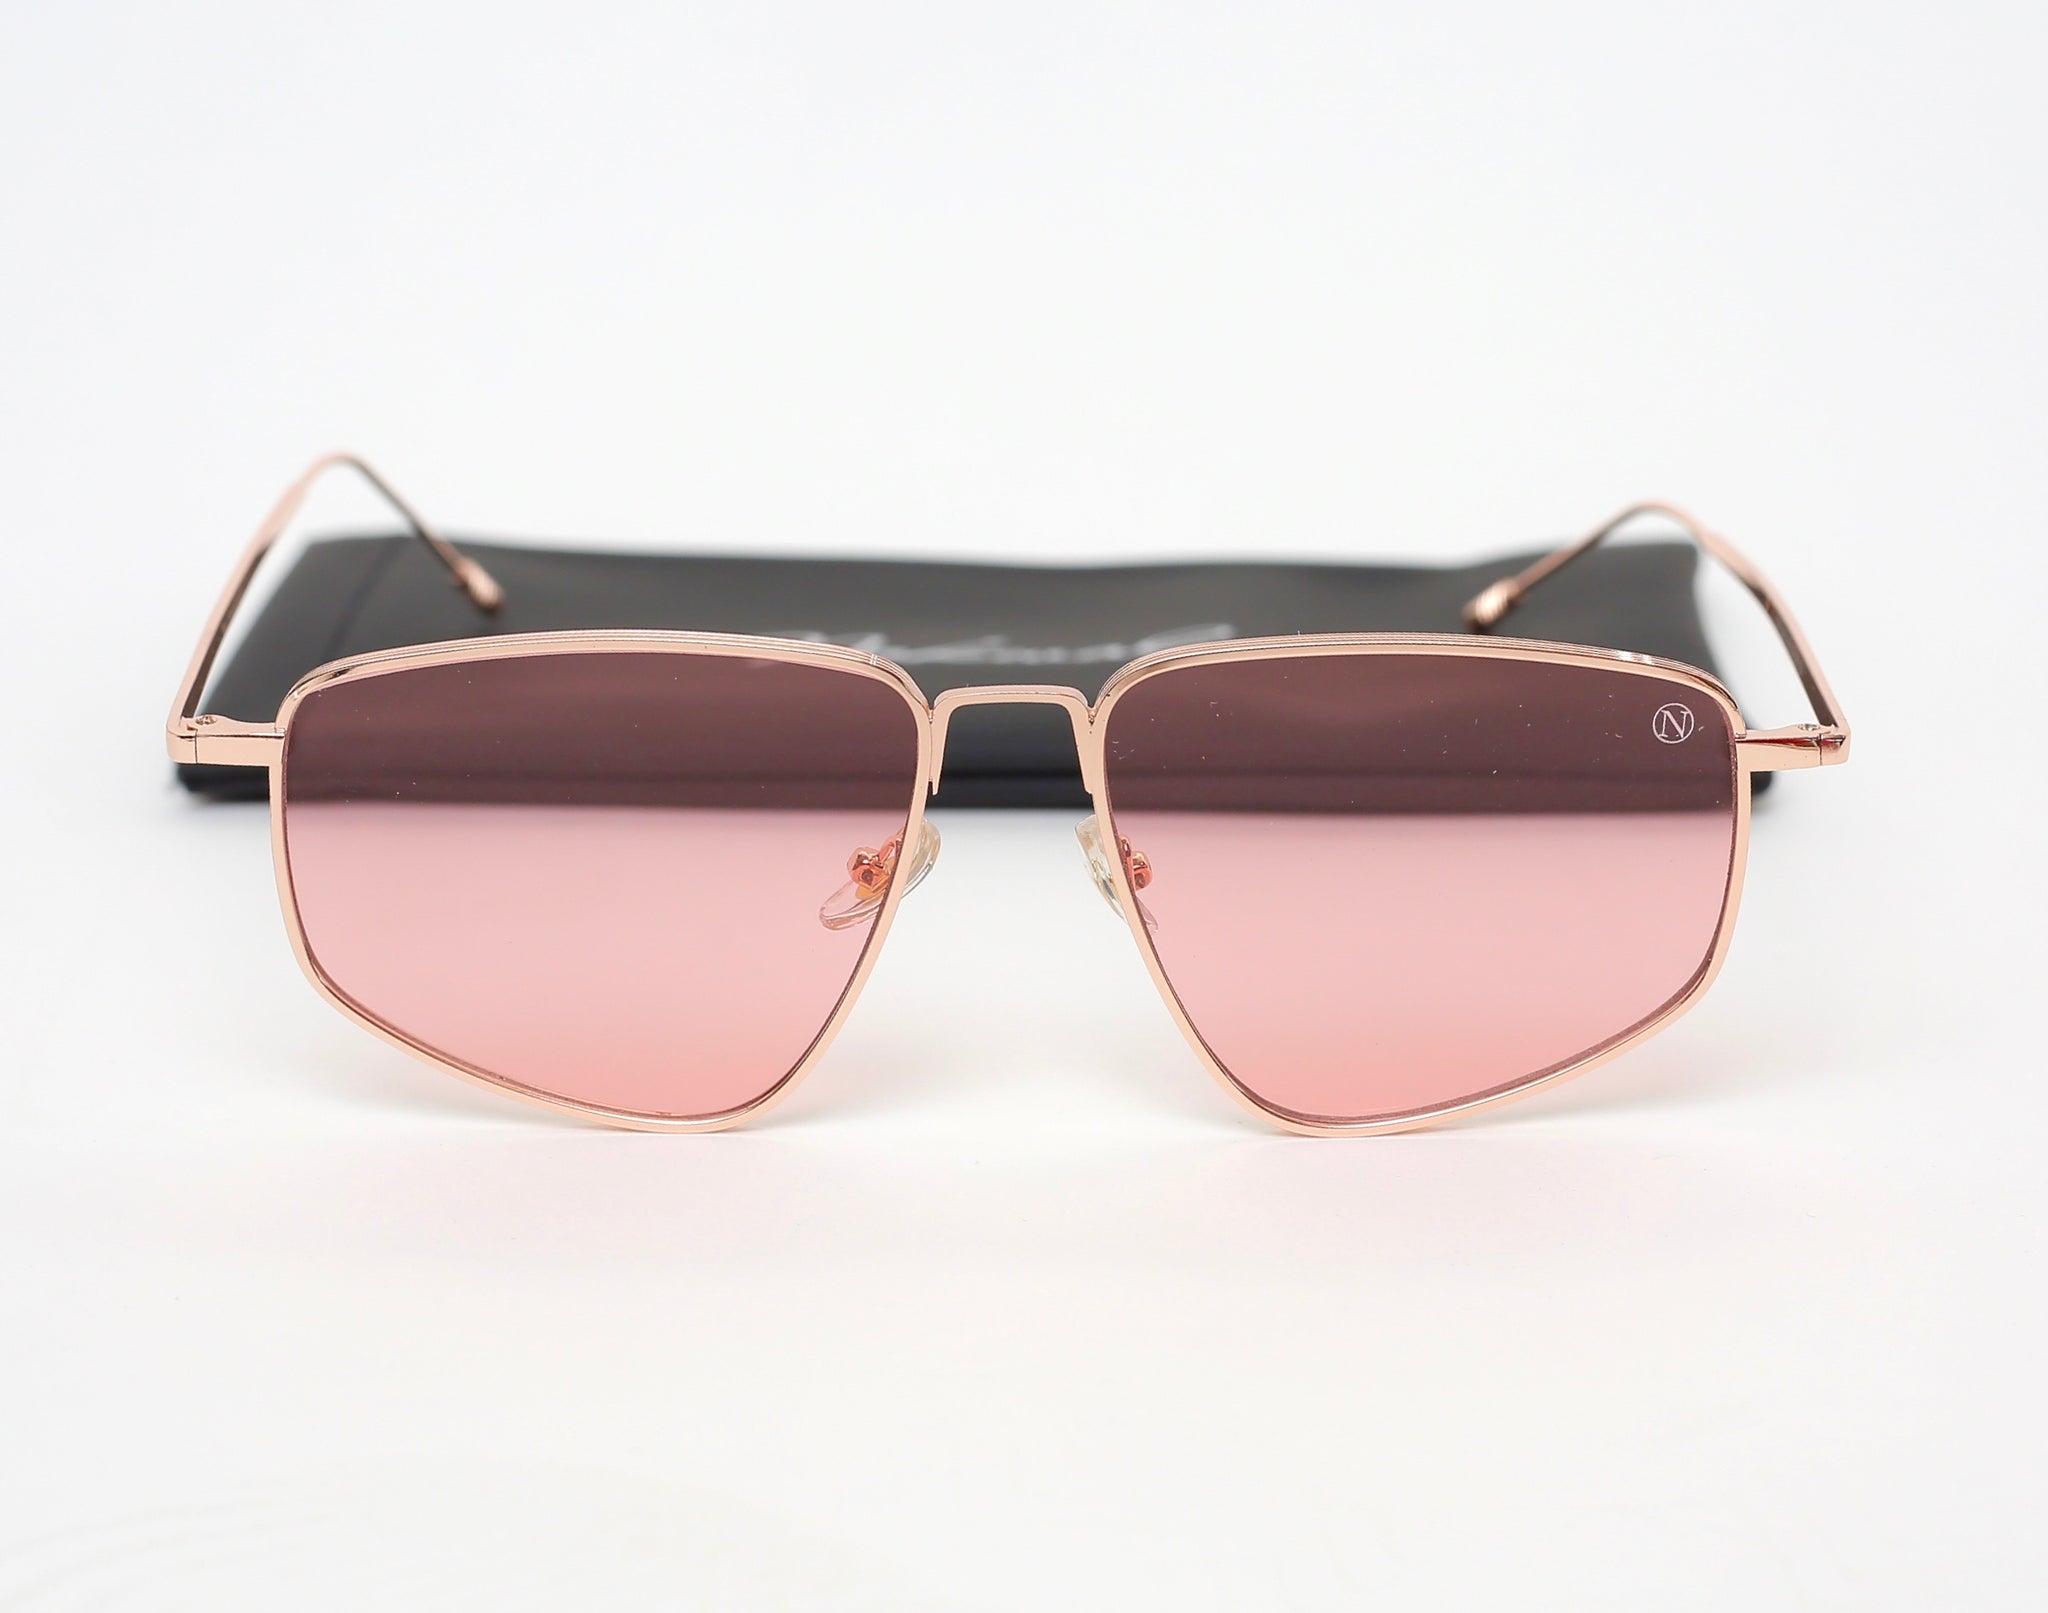 Fancy Sunglasses w/cover